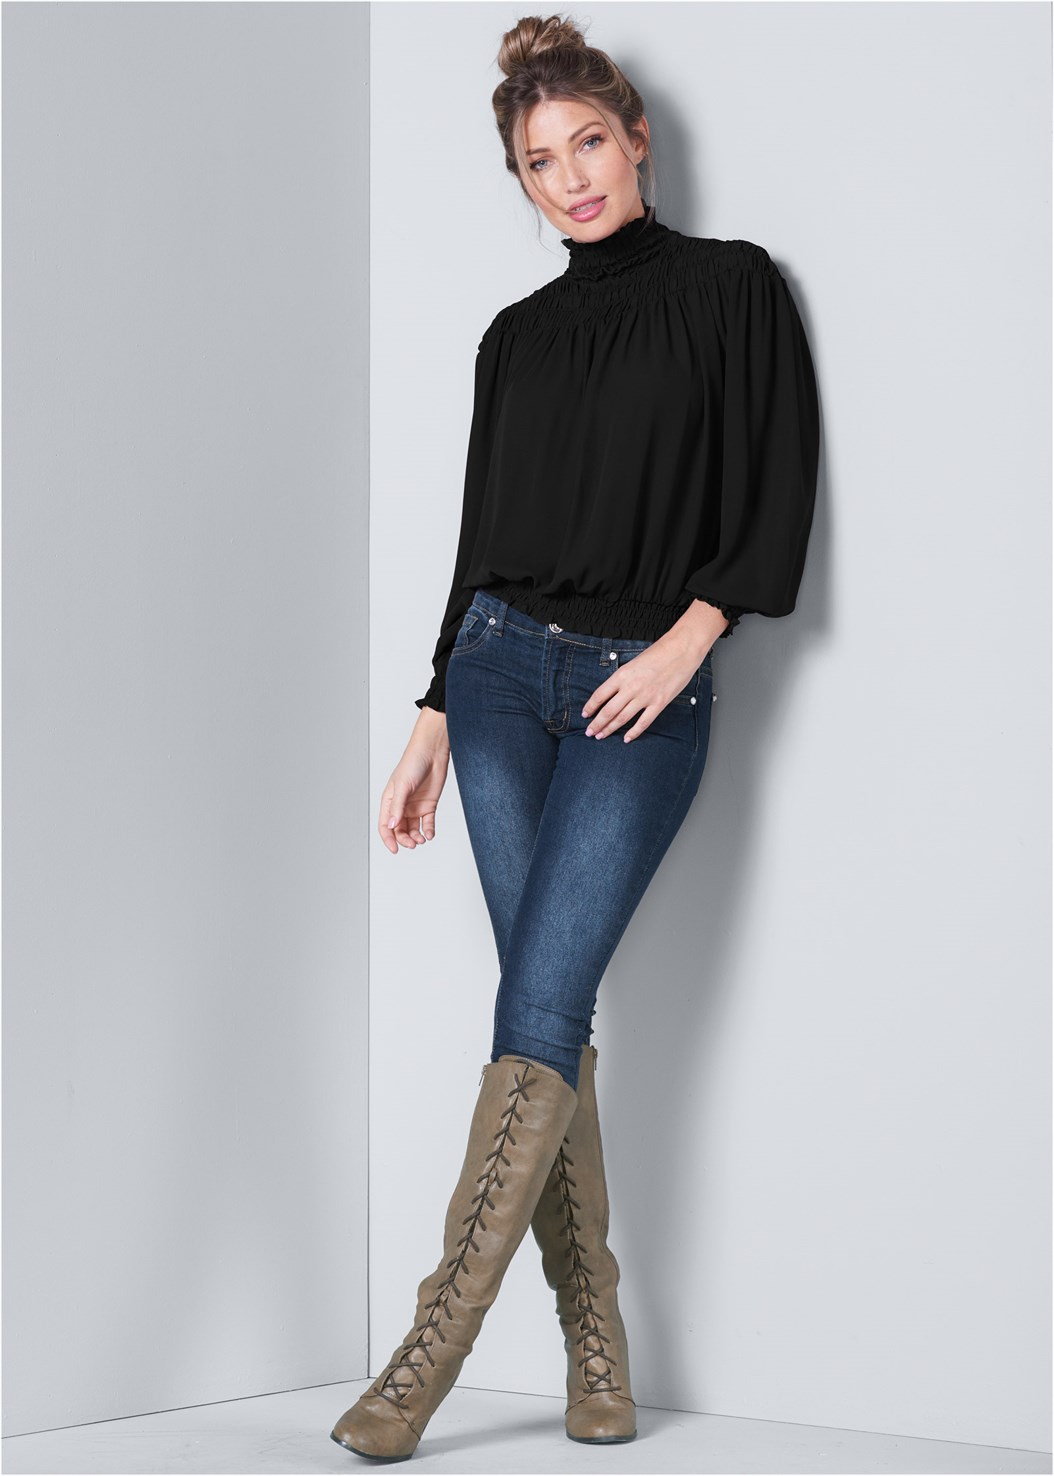 Smocked Detail Top,Mid Rise Color Skinny Jeans,Mid Rise Full Length Slimming Stretch Jeggings,Lace Up Tall Boots,Western Style Booties